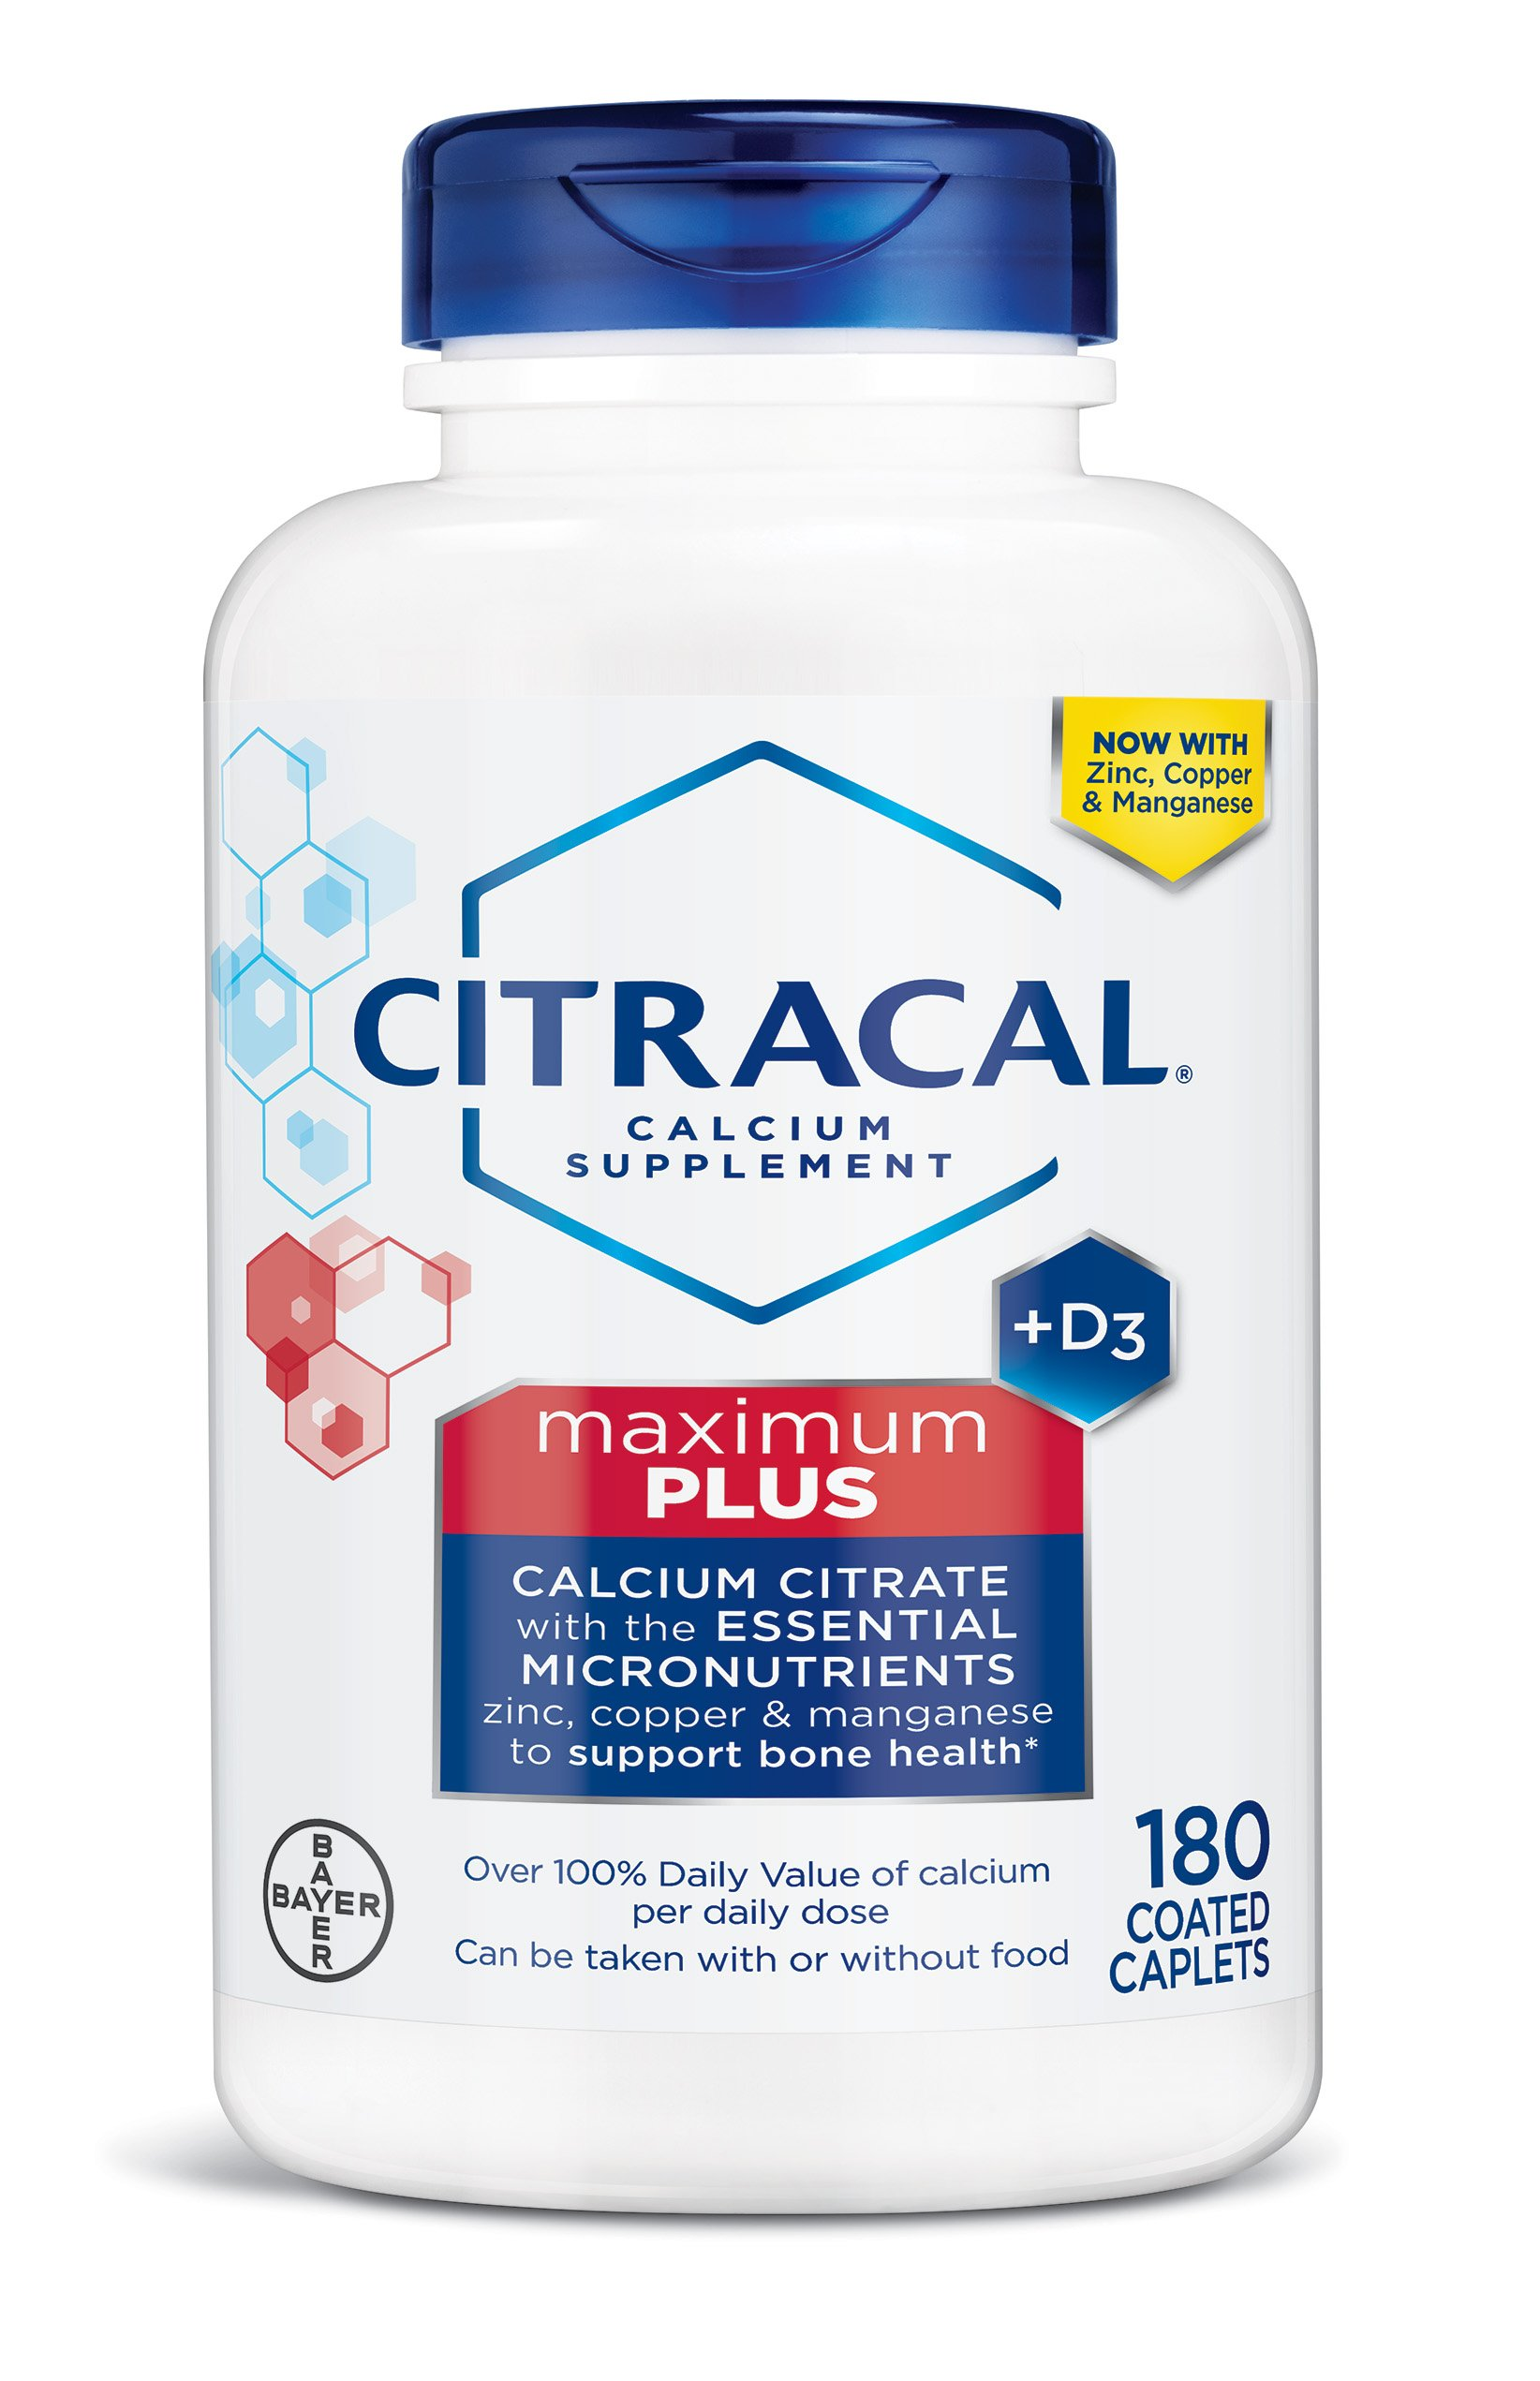 Citracal Maximum Plus, Highly Soluble, Easily Digested, 630 mg Calcium Citrate With 500 IU Vitamin D3, Bone Health Supplement for Adults, Caplets, 180 Count